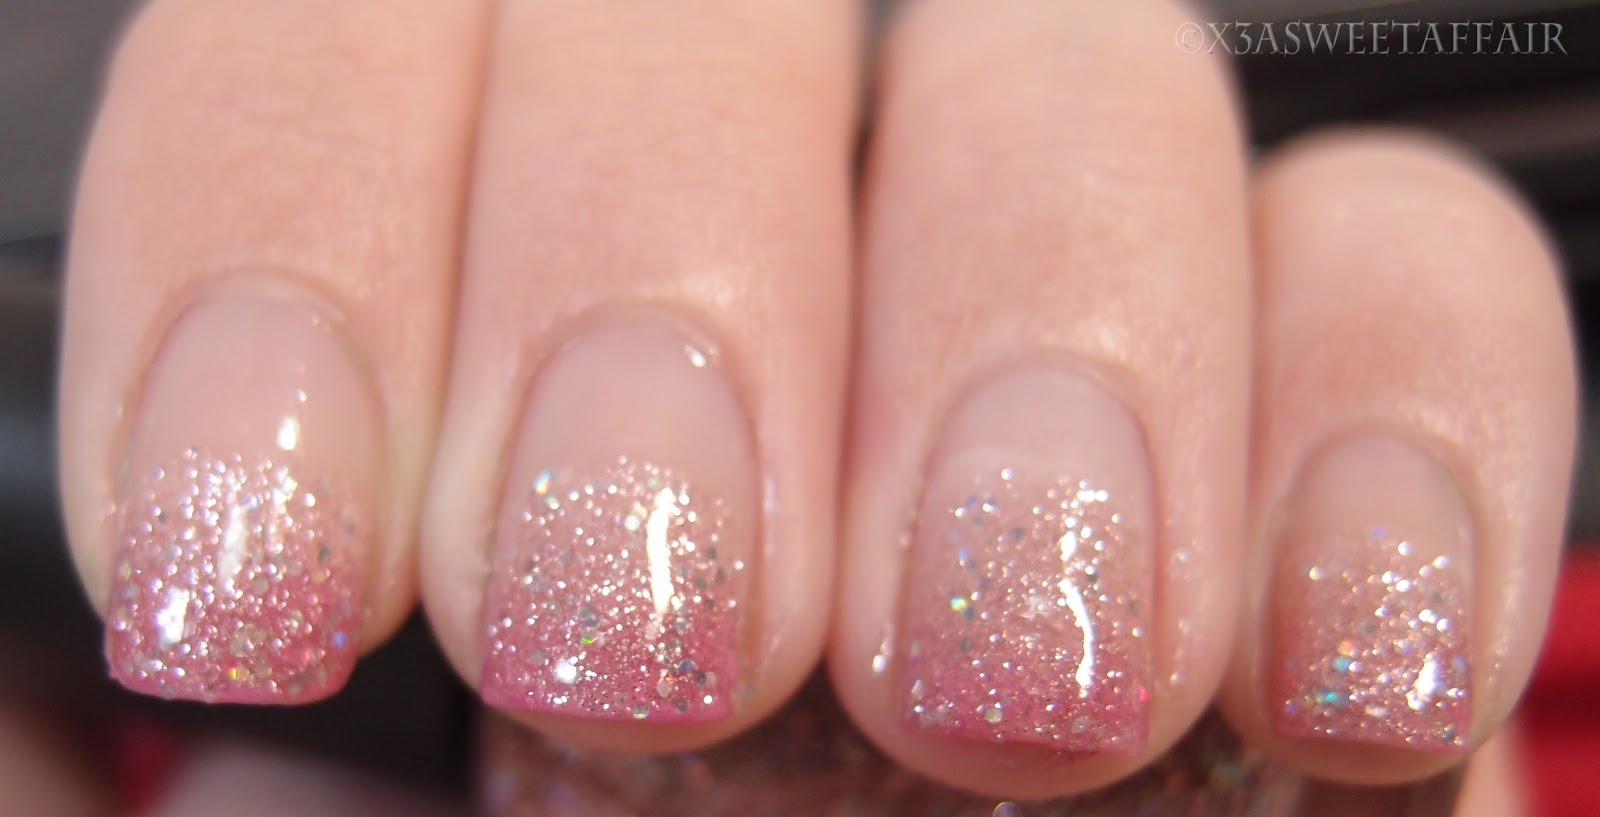 x3asweetaffair naturally nails pink ombre glitter